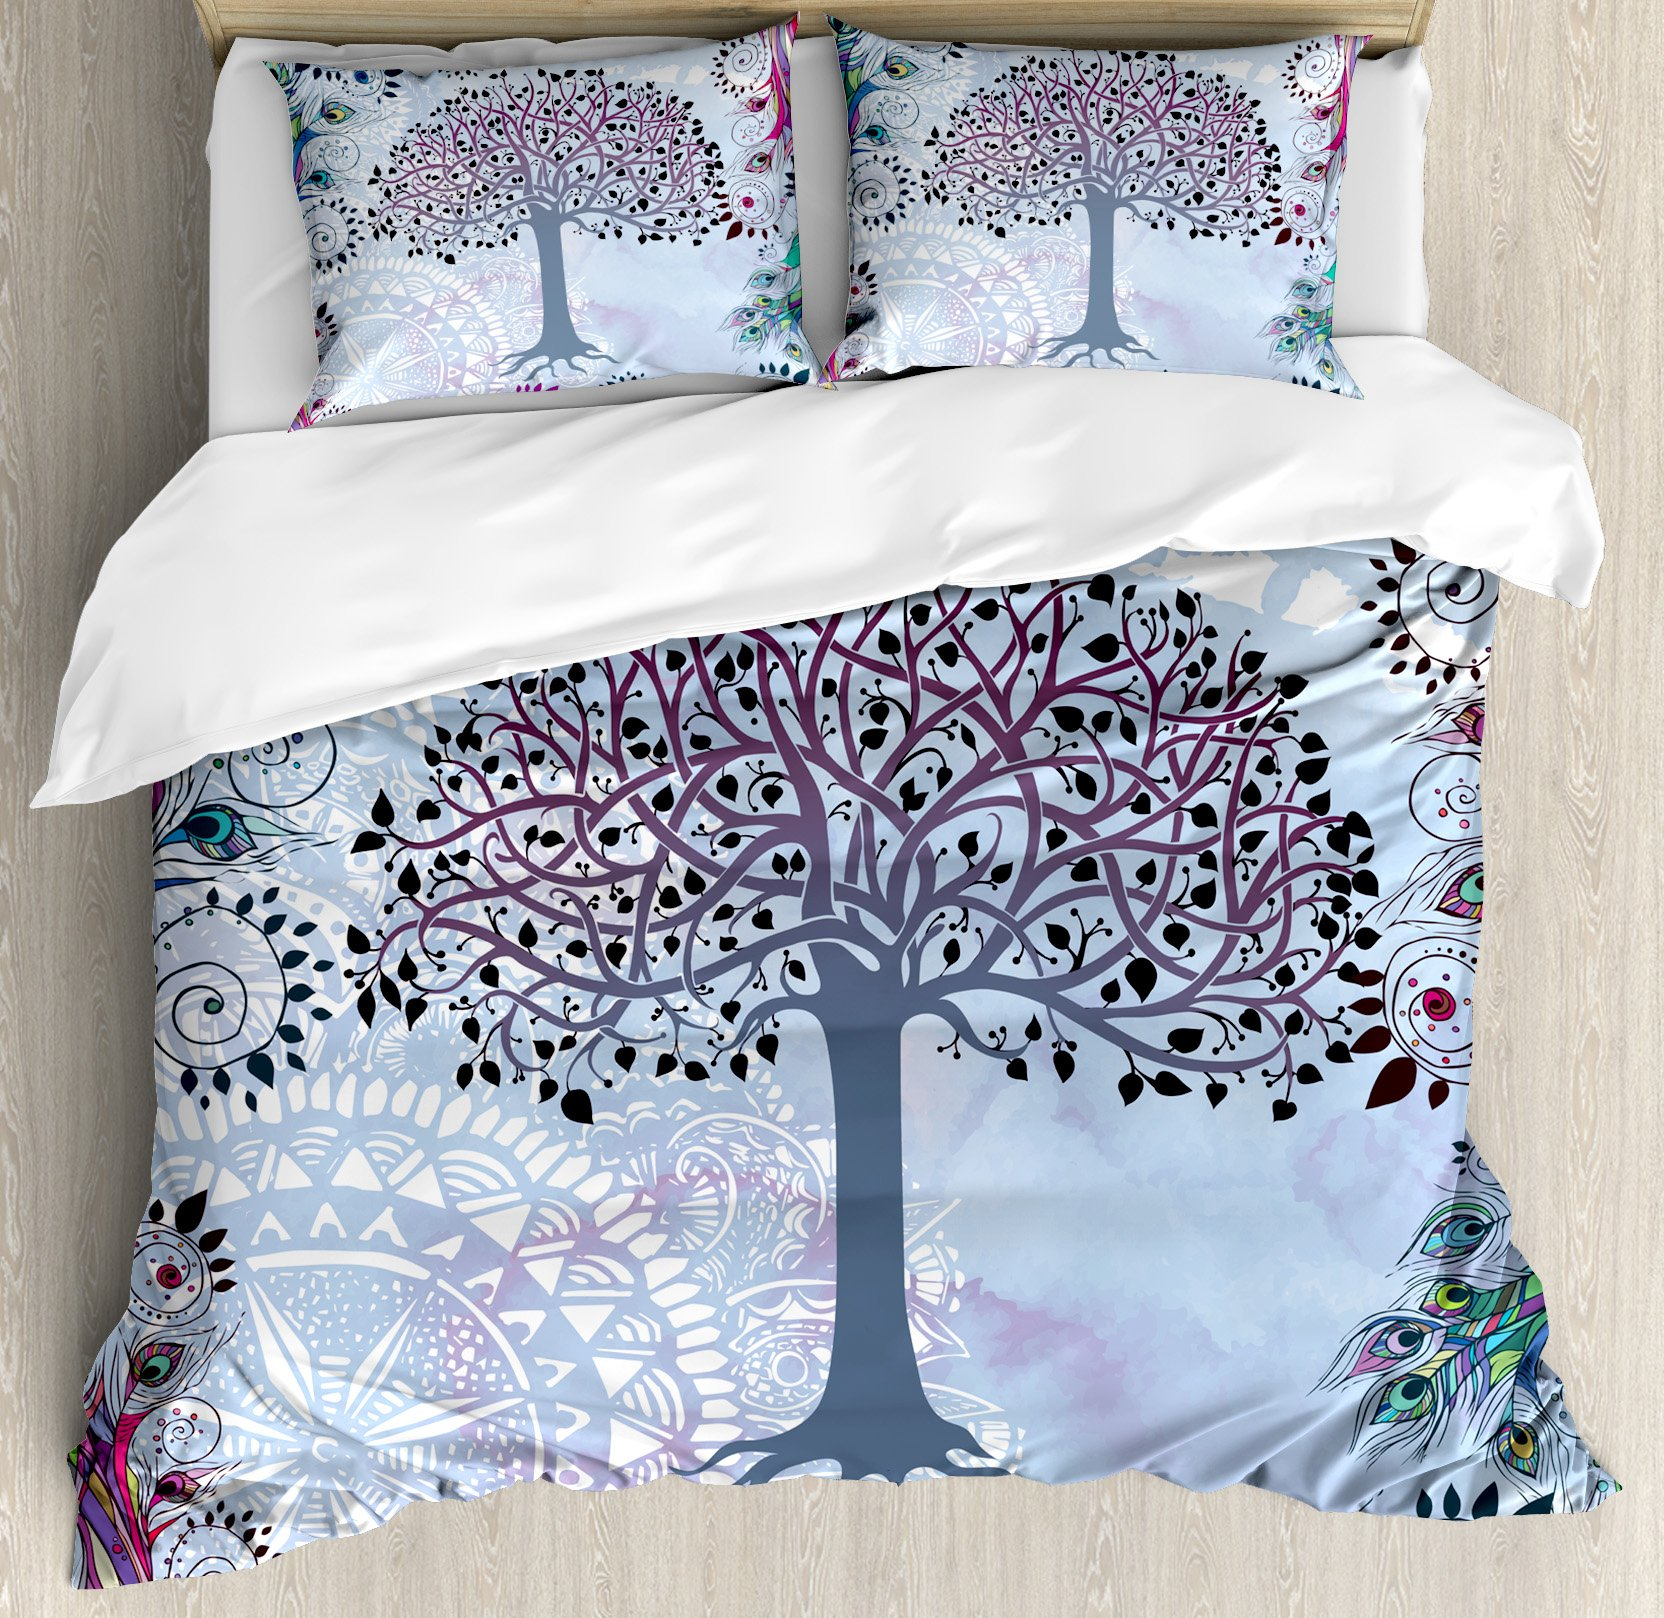 Nature Duvet Cover Set King Size by Ambesonne, Cute Tree of Life Motif with Peacock Feathers Tribal Vintage Primitive Nature Illustration, Decorative 3 Piece Bedding Set with 2 Pillow Shams, Blue